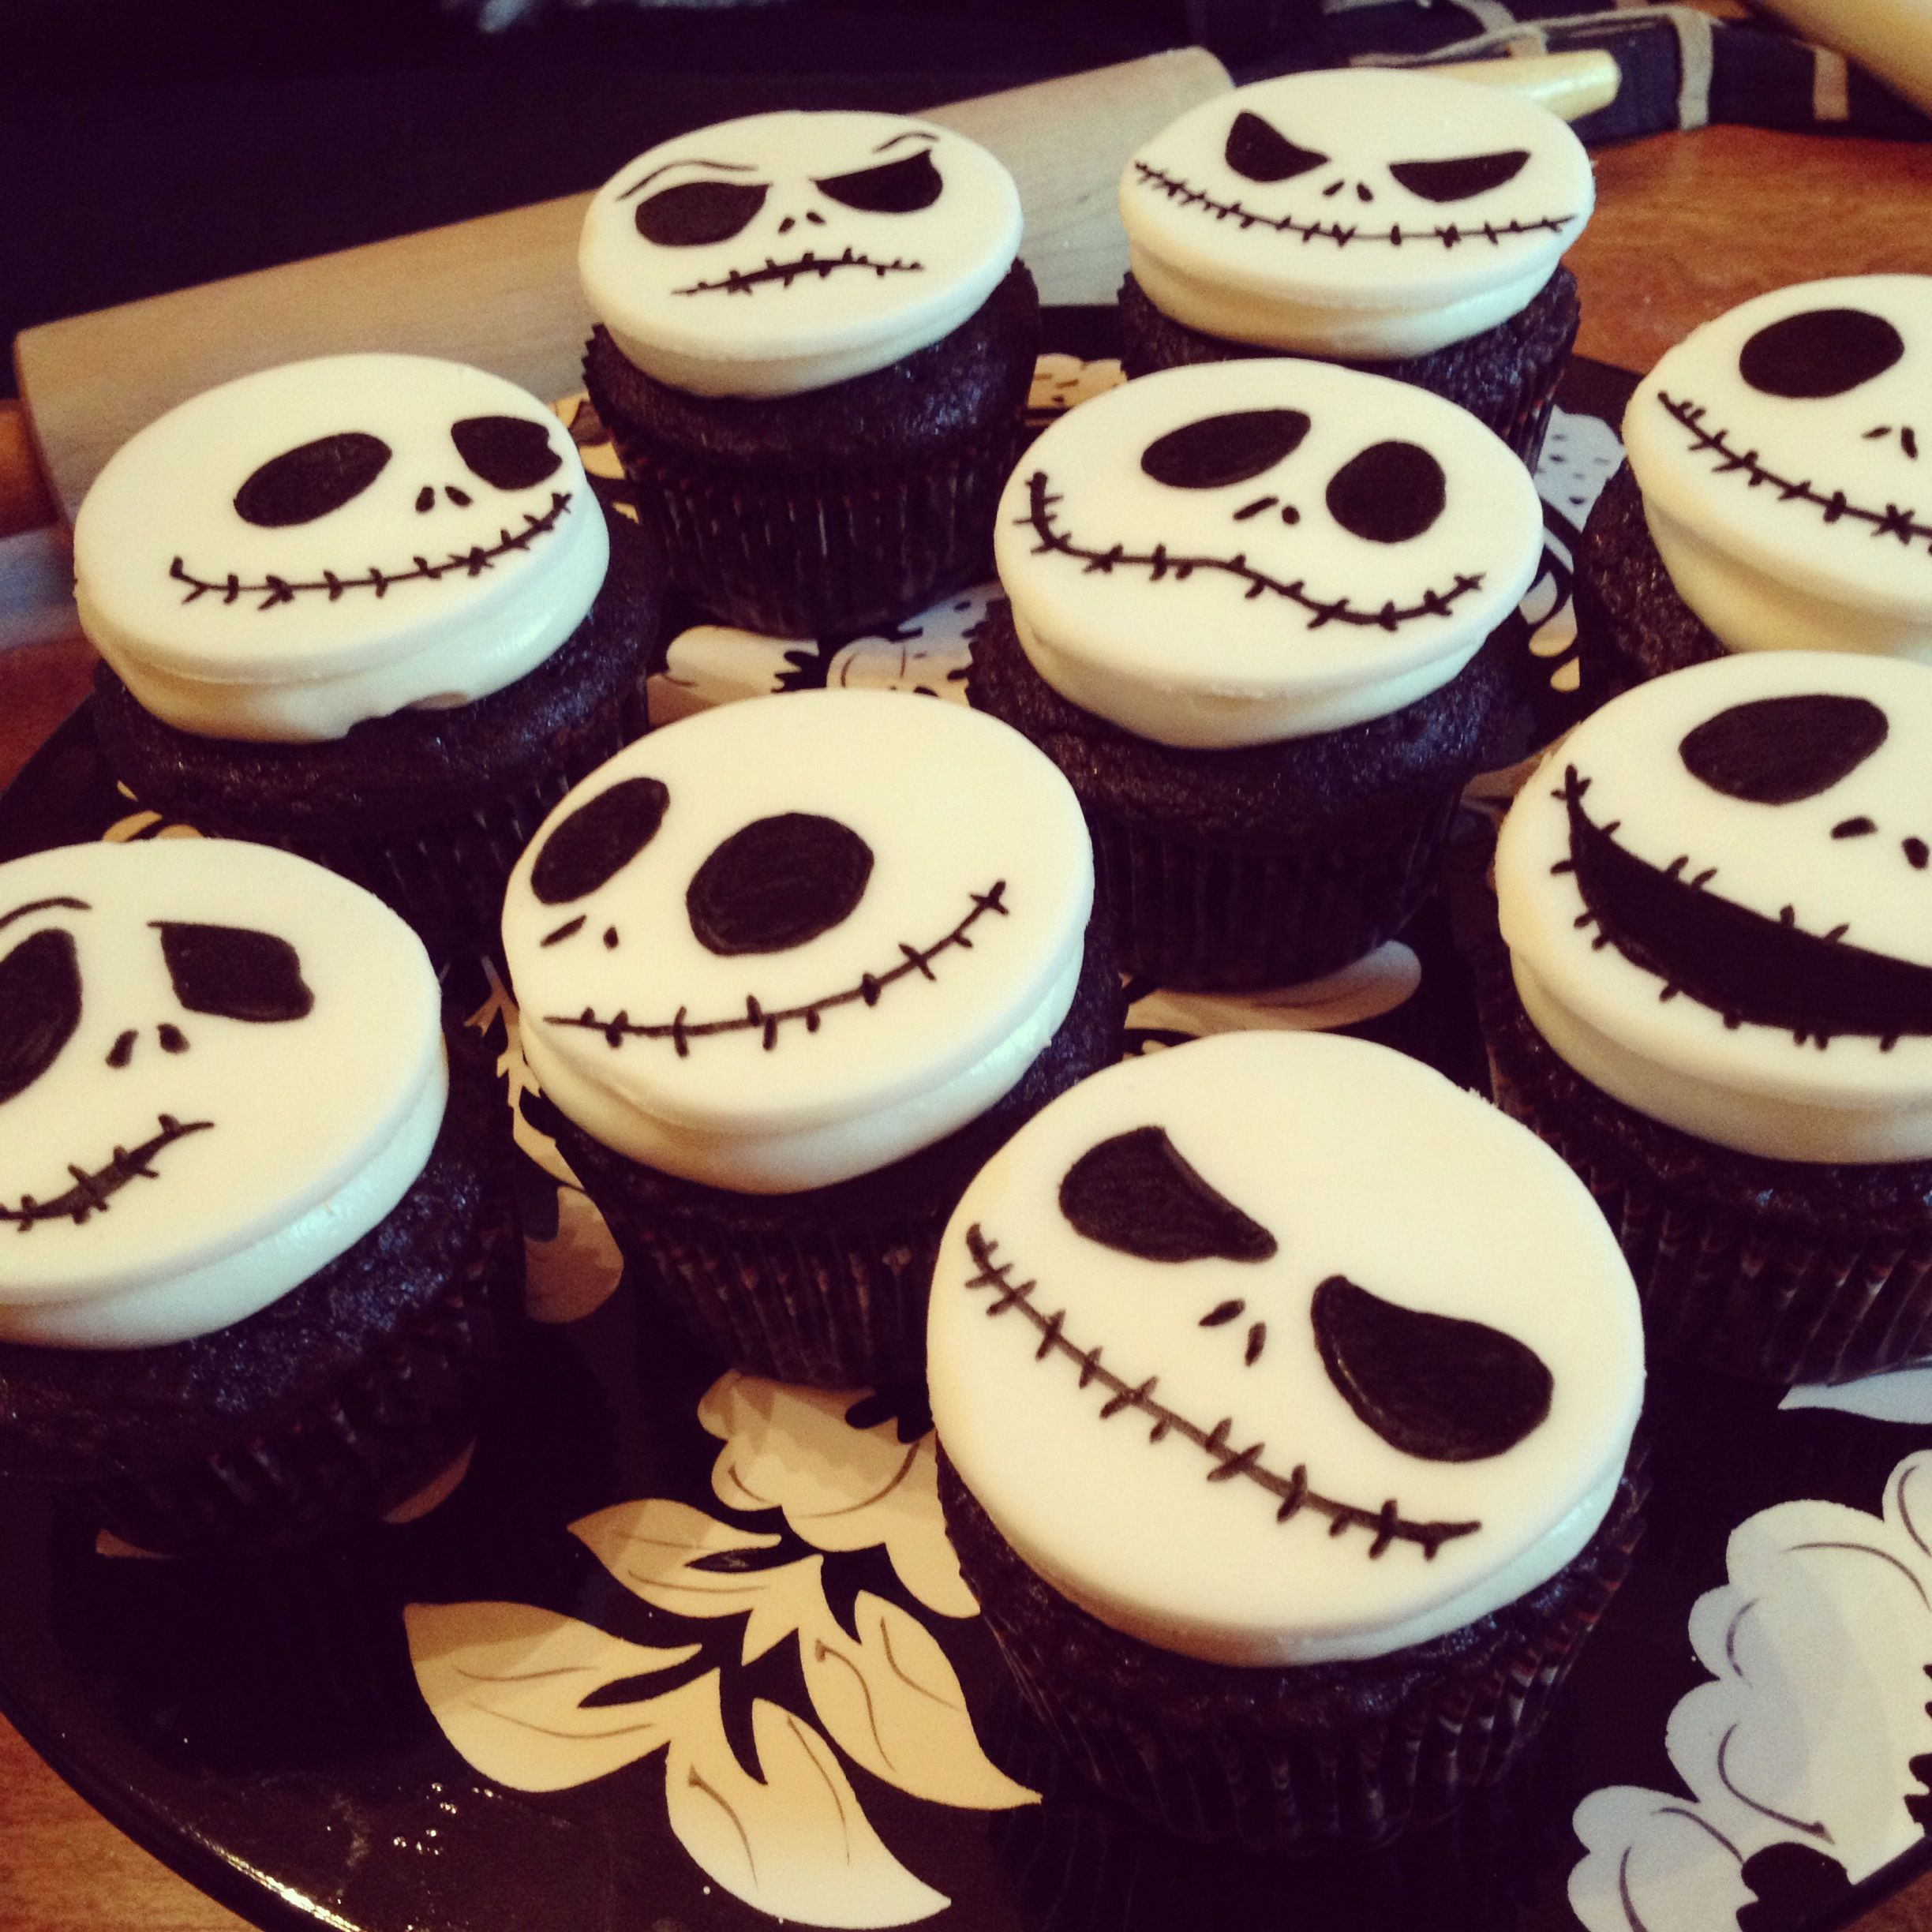 Jack Skellington cupcakes white fondant with gourmet food pen sketching